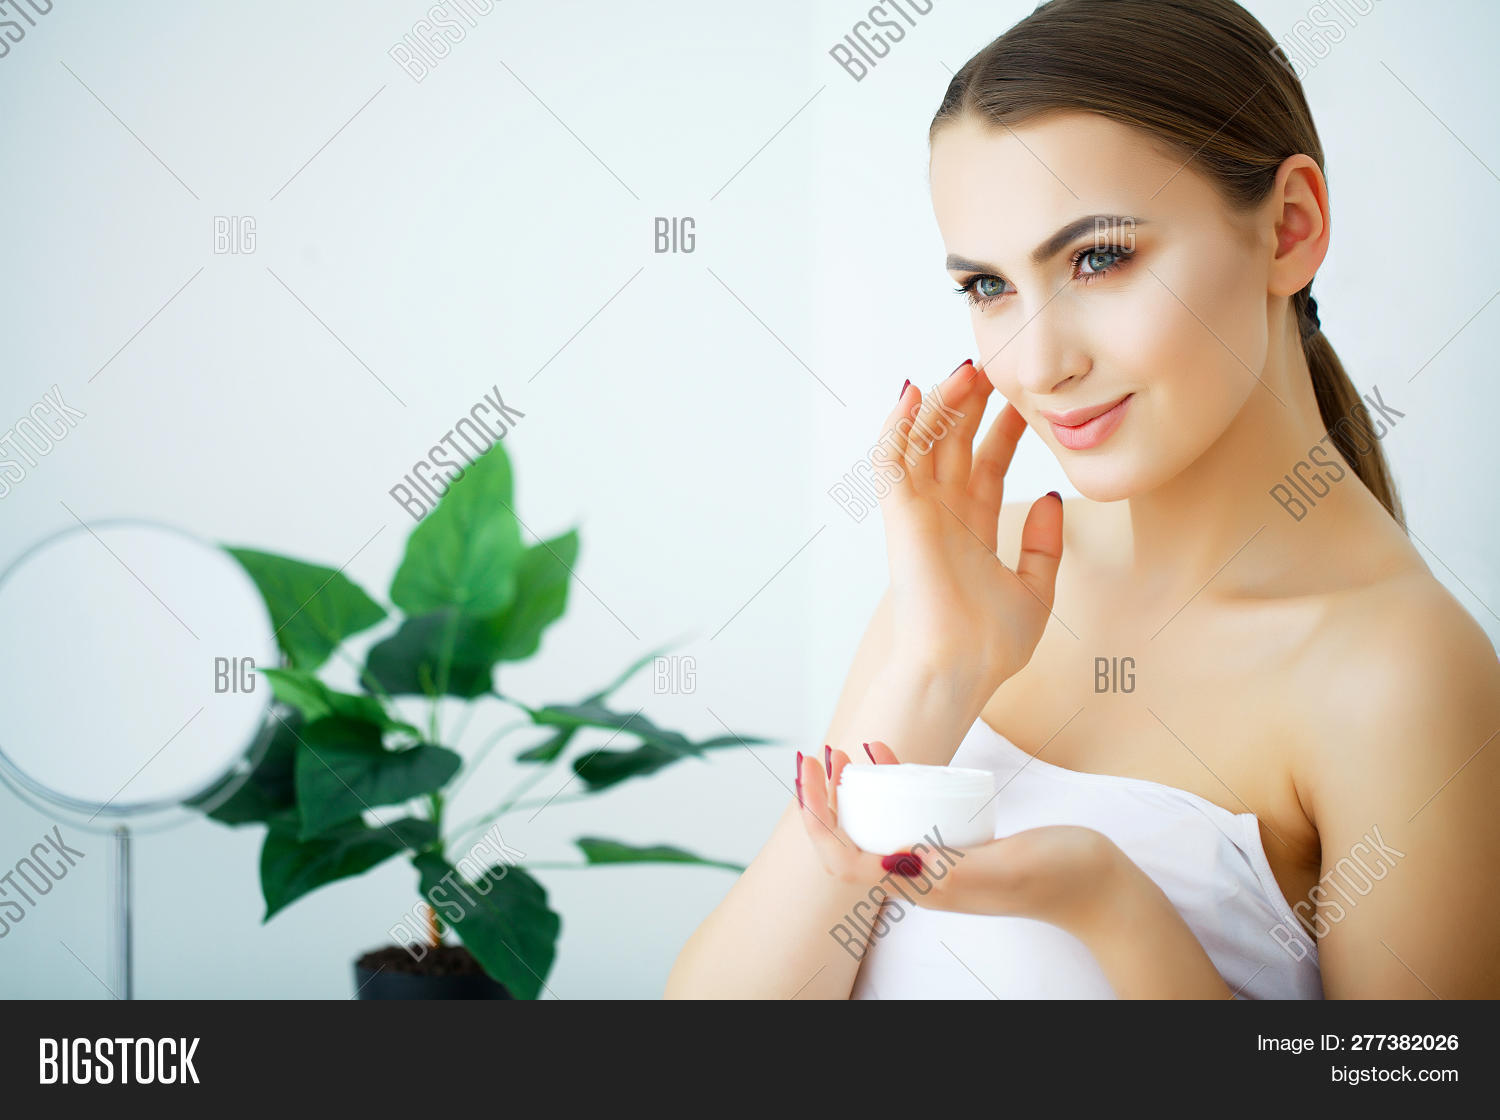 apply,applying,background,beautiful,beauty,body,care,clean,closeup,cosmetic,cream,creme,dermatology,face,facial,female,finger,girl,hand,health,healthy,human,isolated,lotion,moisturiser,moisturizer,moisturizing,people,person,skin,skincare,smooth,spa,treatment,wellness,white,women,young